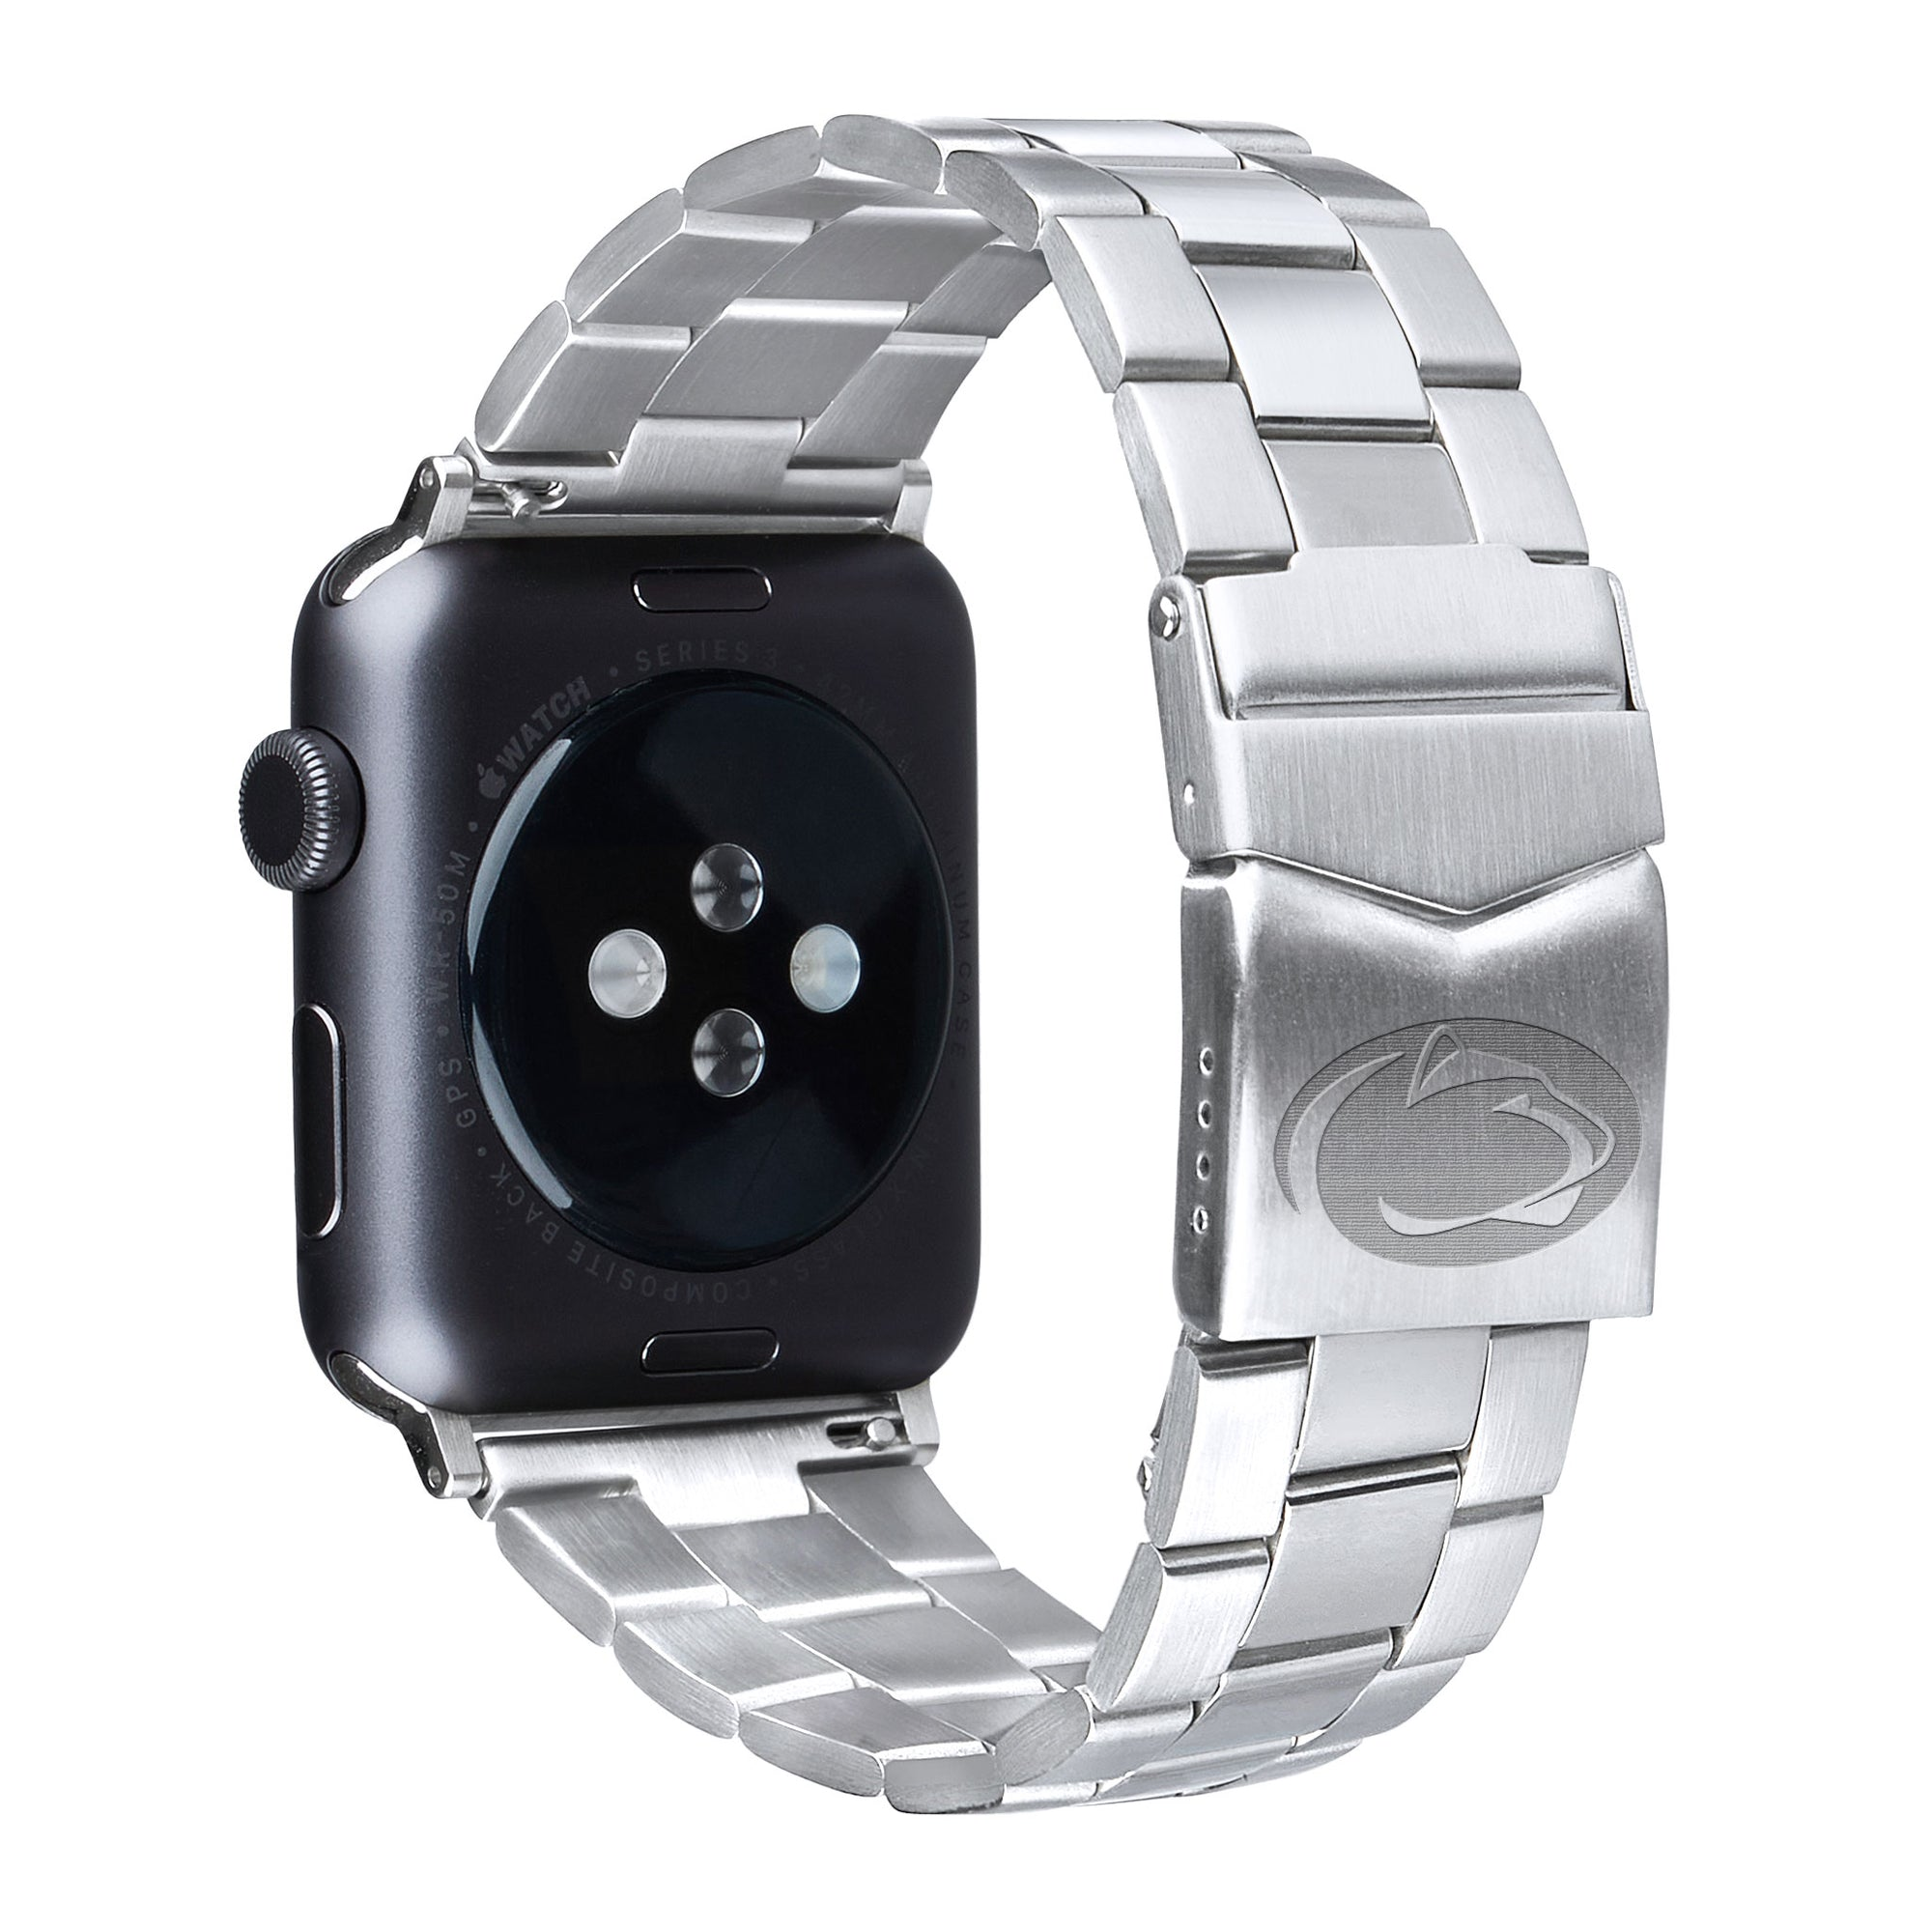 Penn State Nittany Lions Stainless Steel Link Style Apple Watch Band - AffinityBands